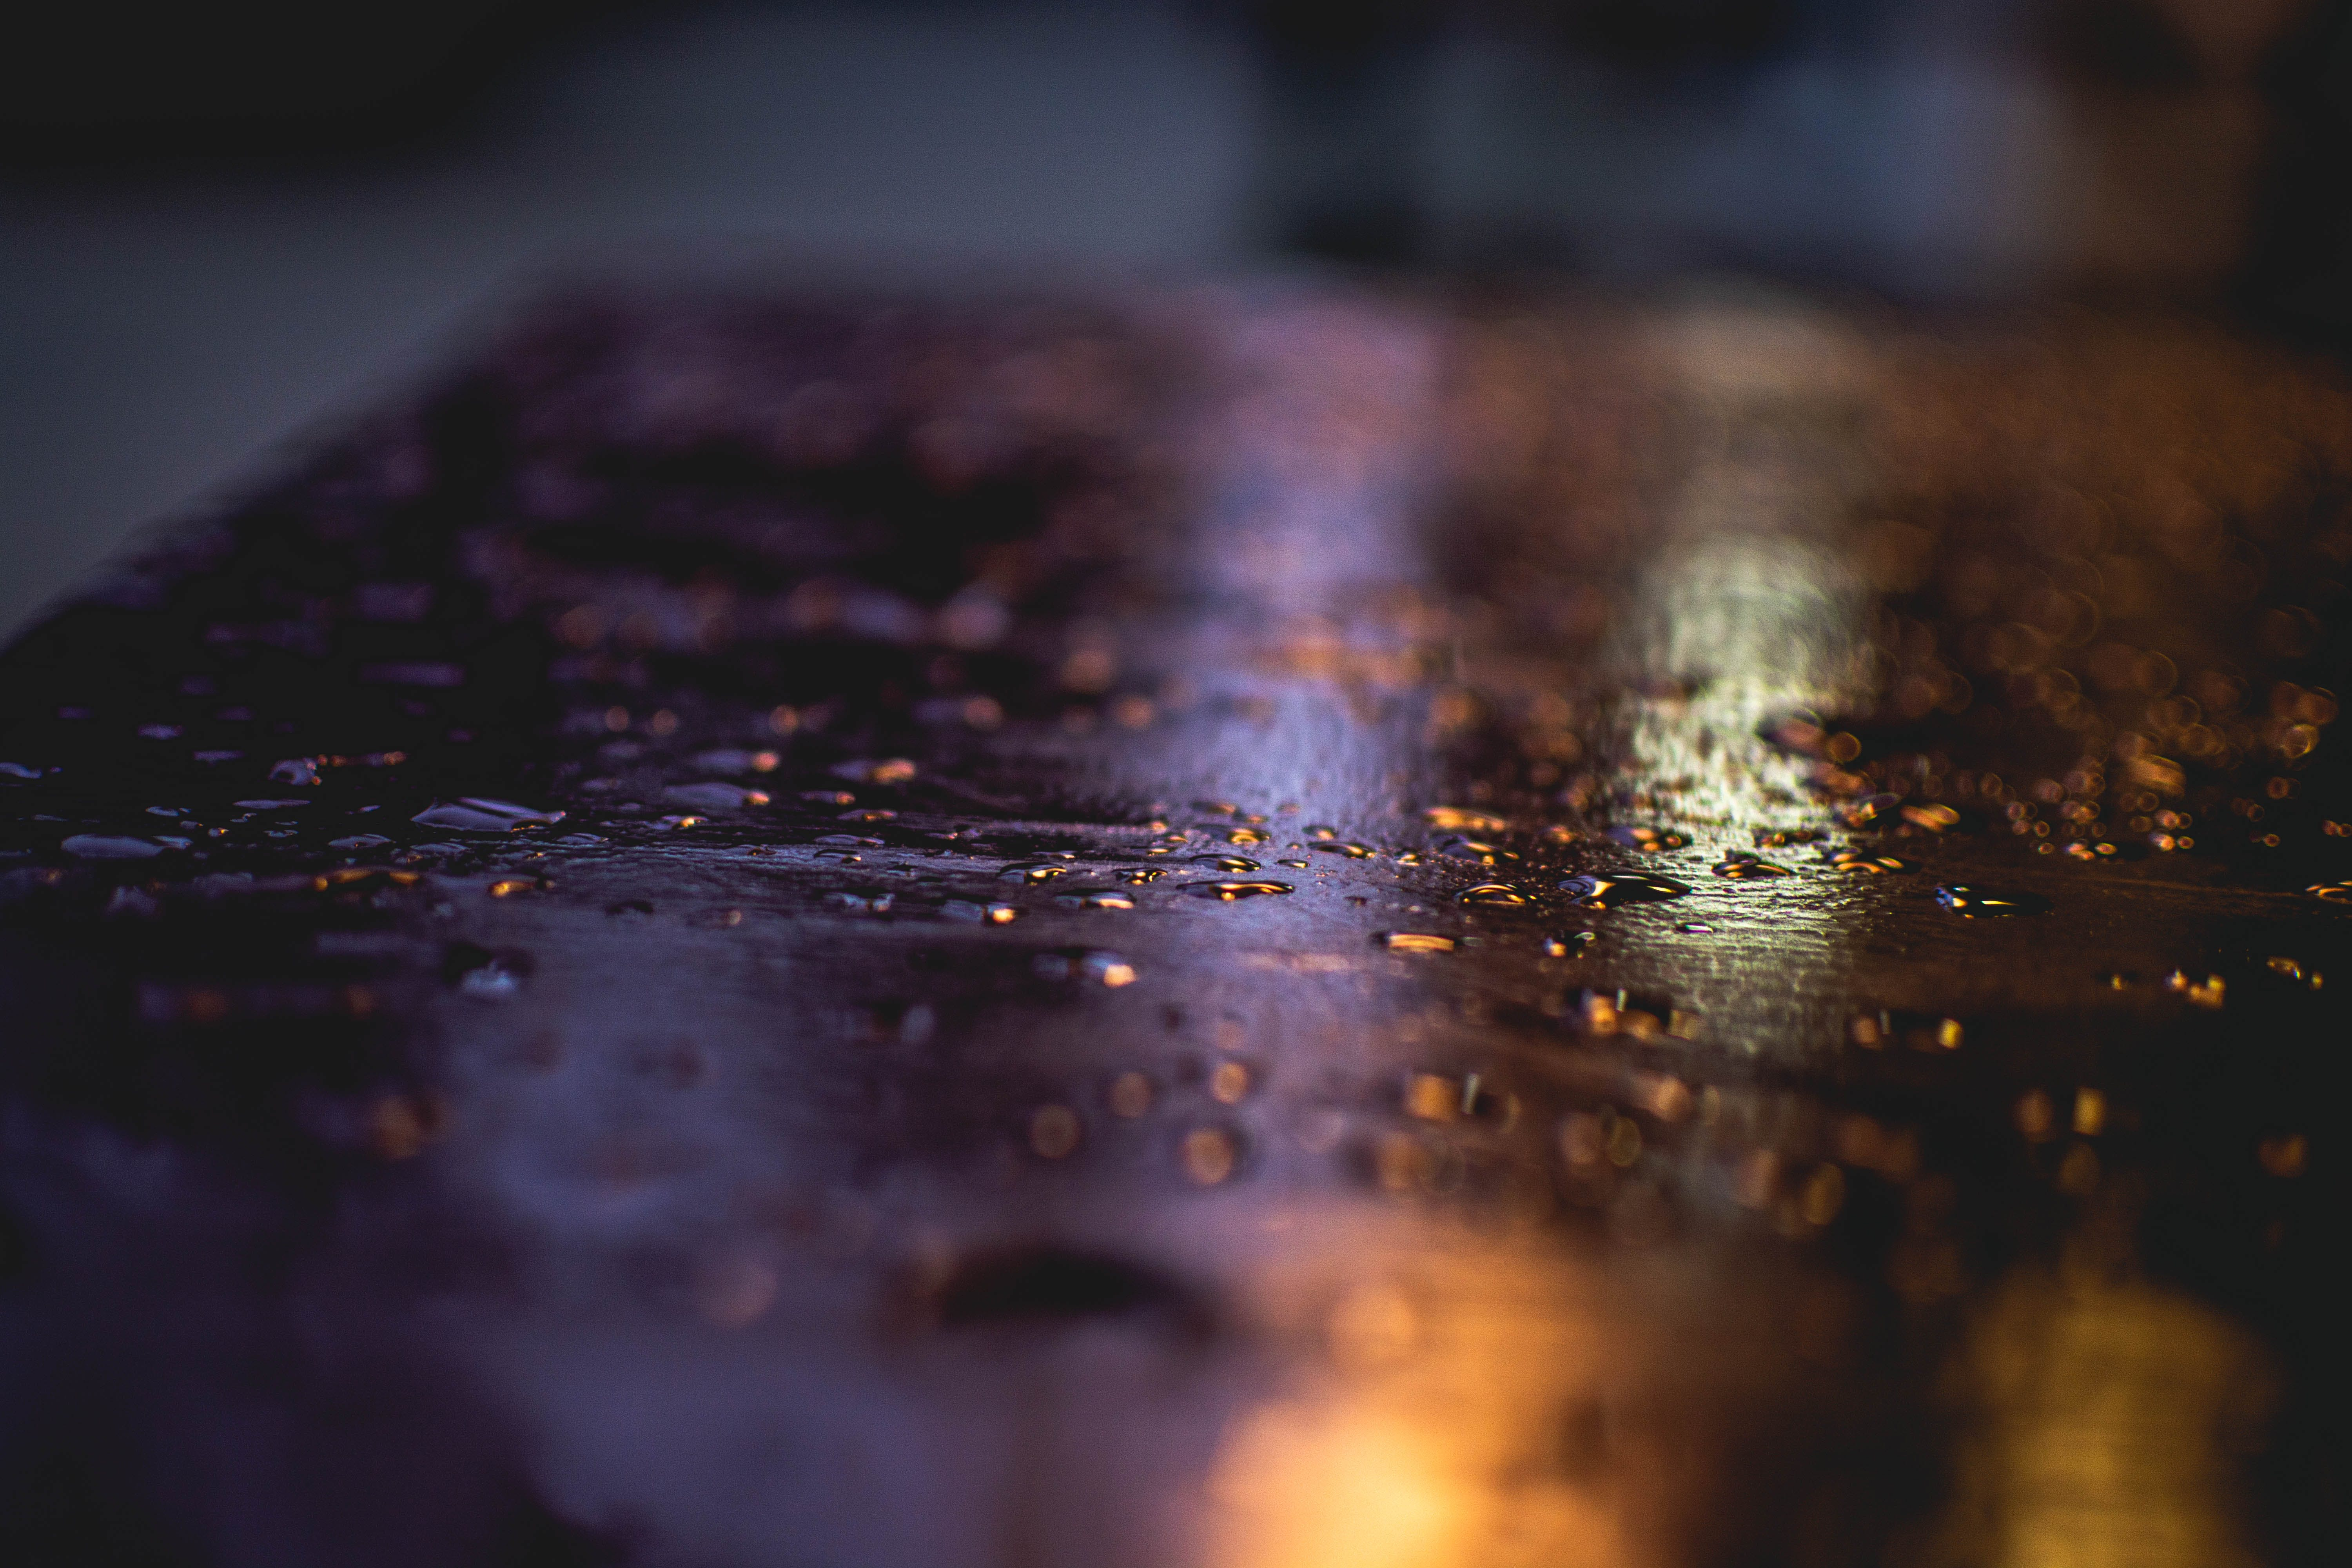 Close Up Photography of Water Droplets on Wooden Surface